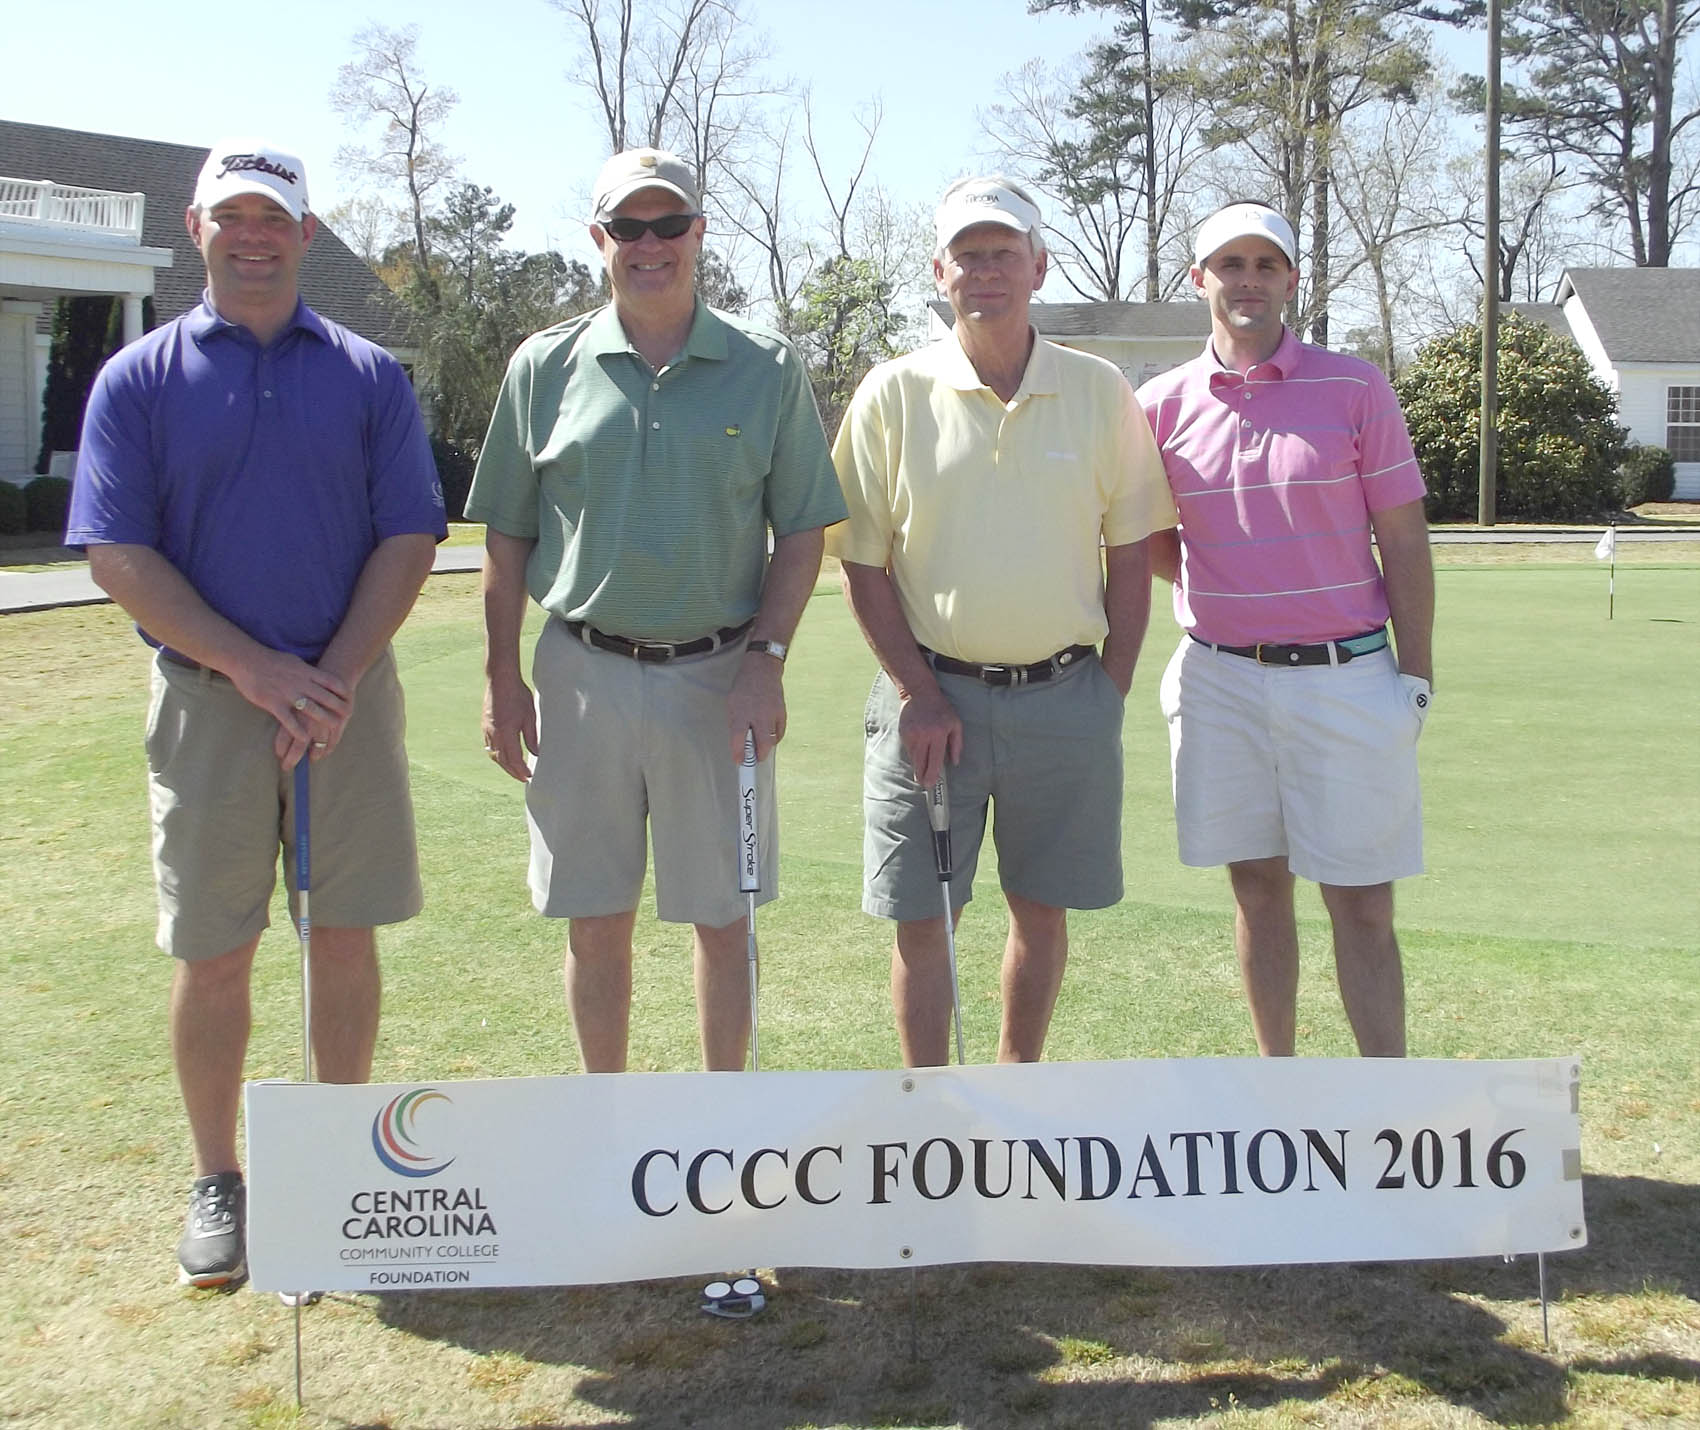 Click to enlarge,  Members of the second flight winning team in the third Central Carolina Community College Foundation Harnett Golf Classic were David Foushee, Travis Bailey, Justin Gaines, and Phil Bradley. For information about the Foundation, donating to it, establishing a scholarship, or other fund-raising events, contact Emily Hare, executive director of the CCCC Foundation, 919-718-7230. Information is also available at the CCCC Foundation website, www.cccc.edu/foundation.